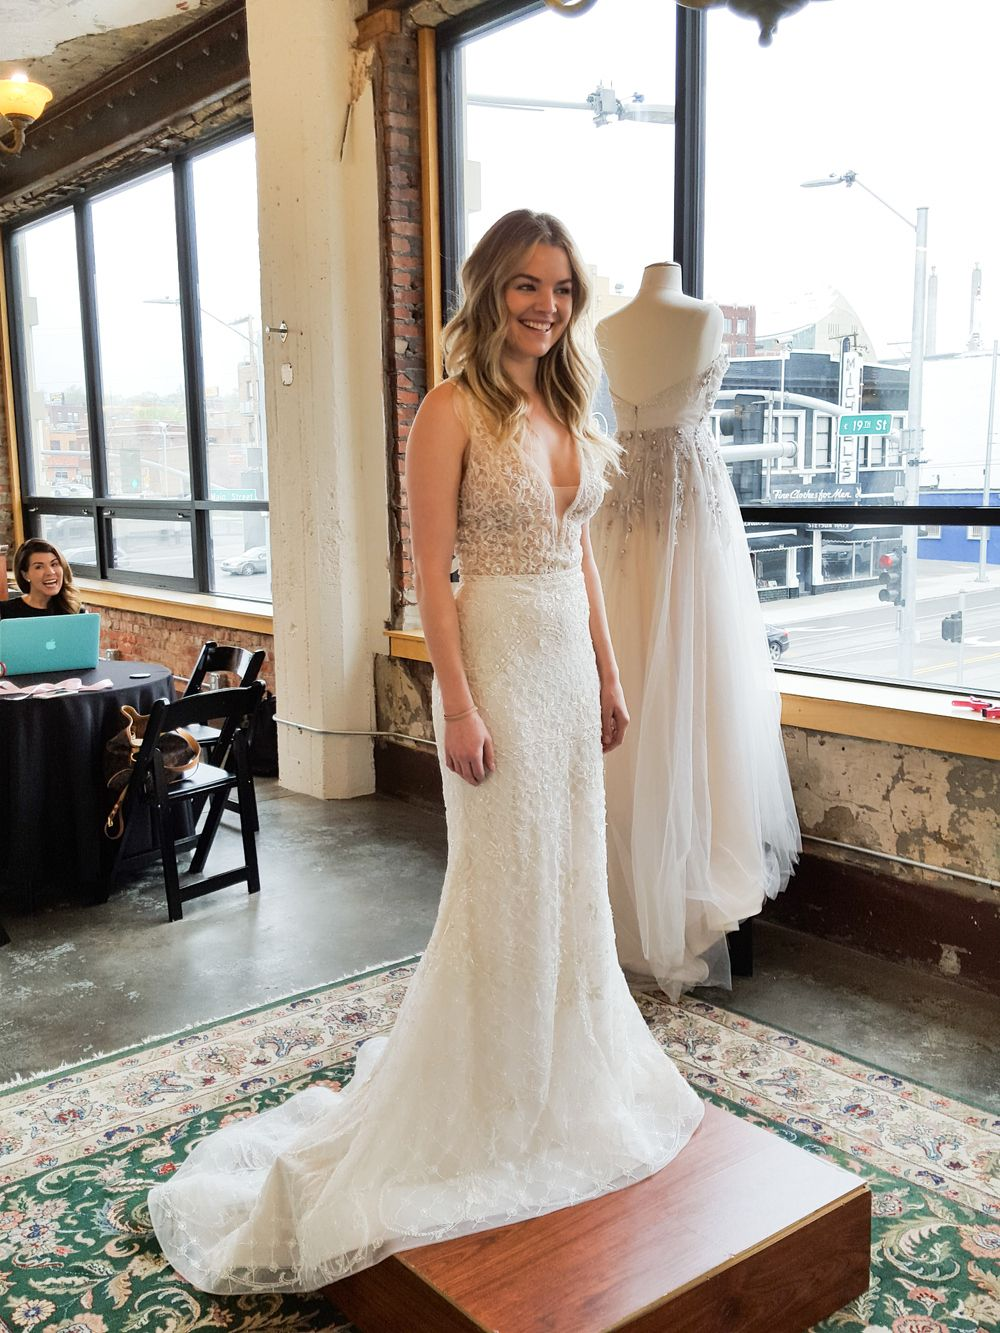 Wedding Dress Shops In Kansas City - Dresses for Wedding Party Check ...